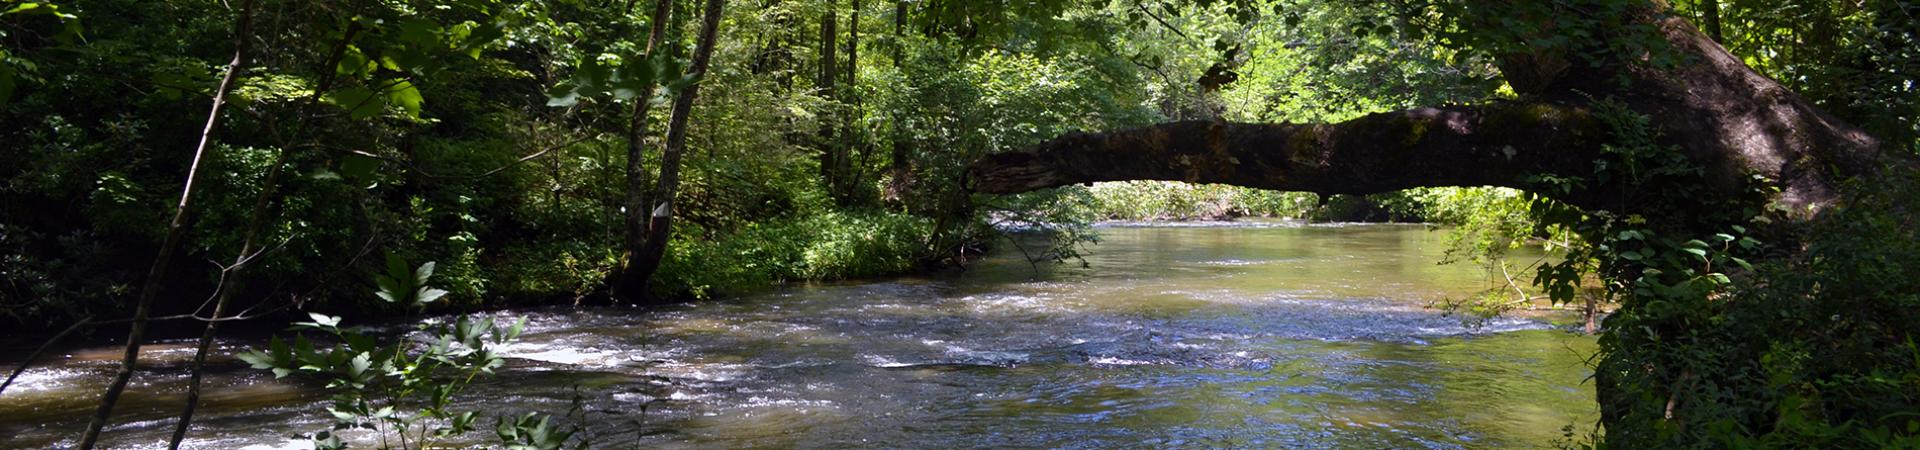 Coopers Creek in the Shade